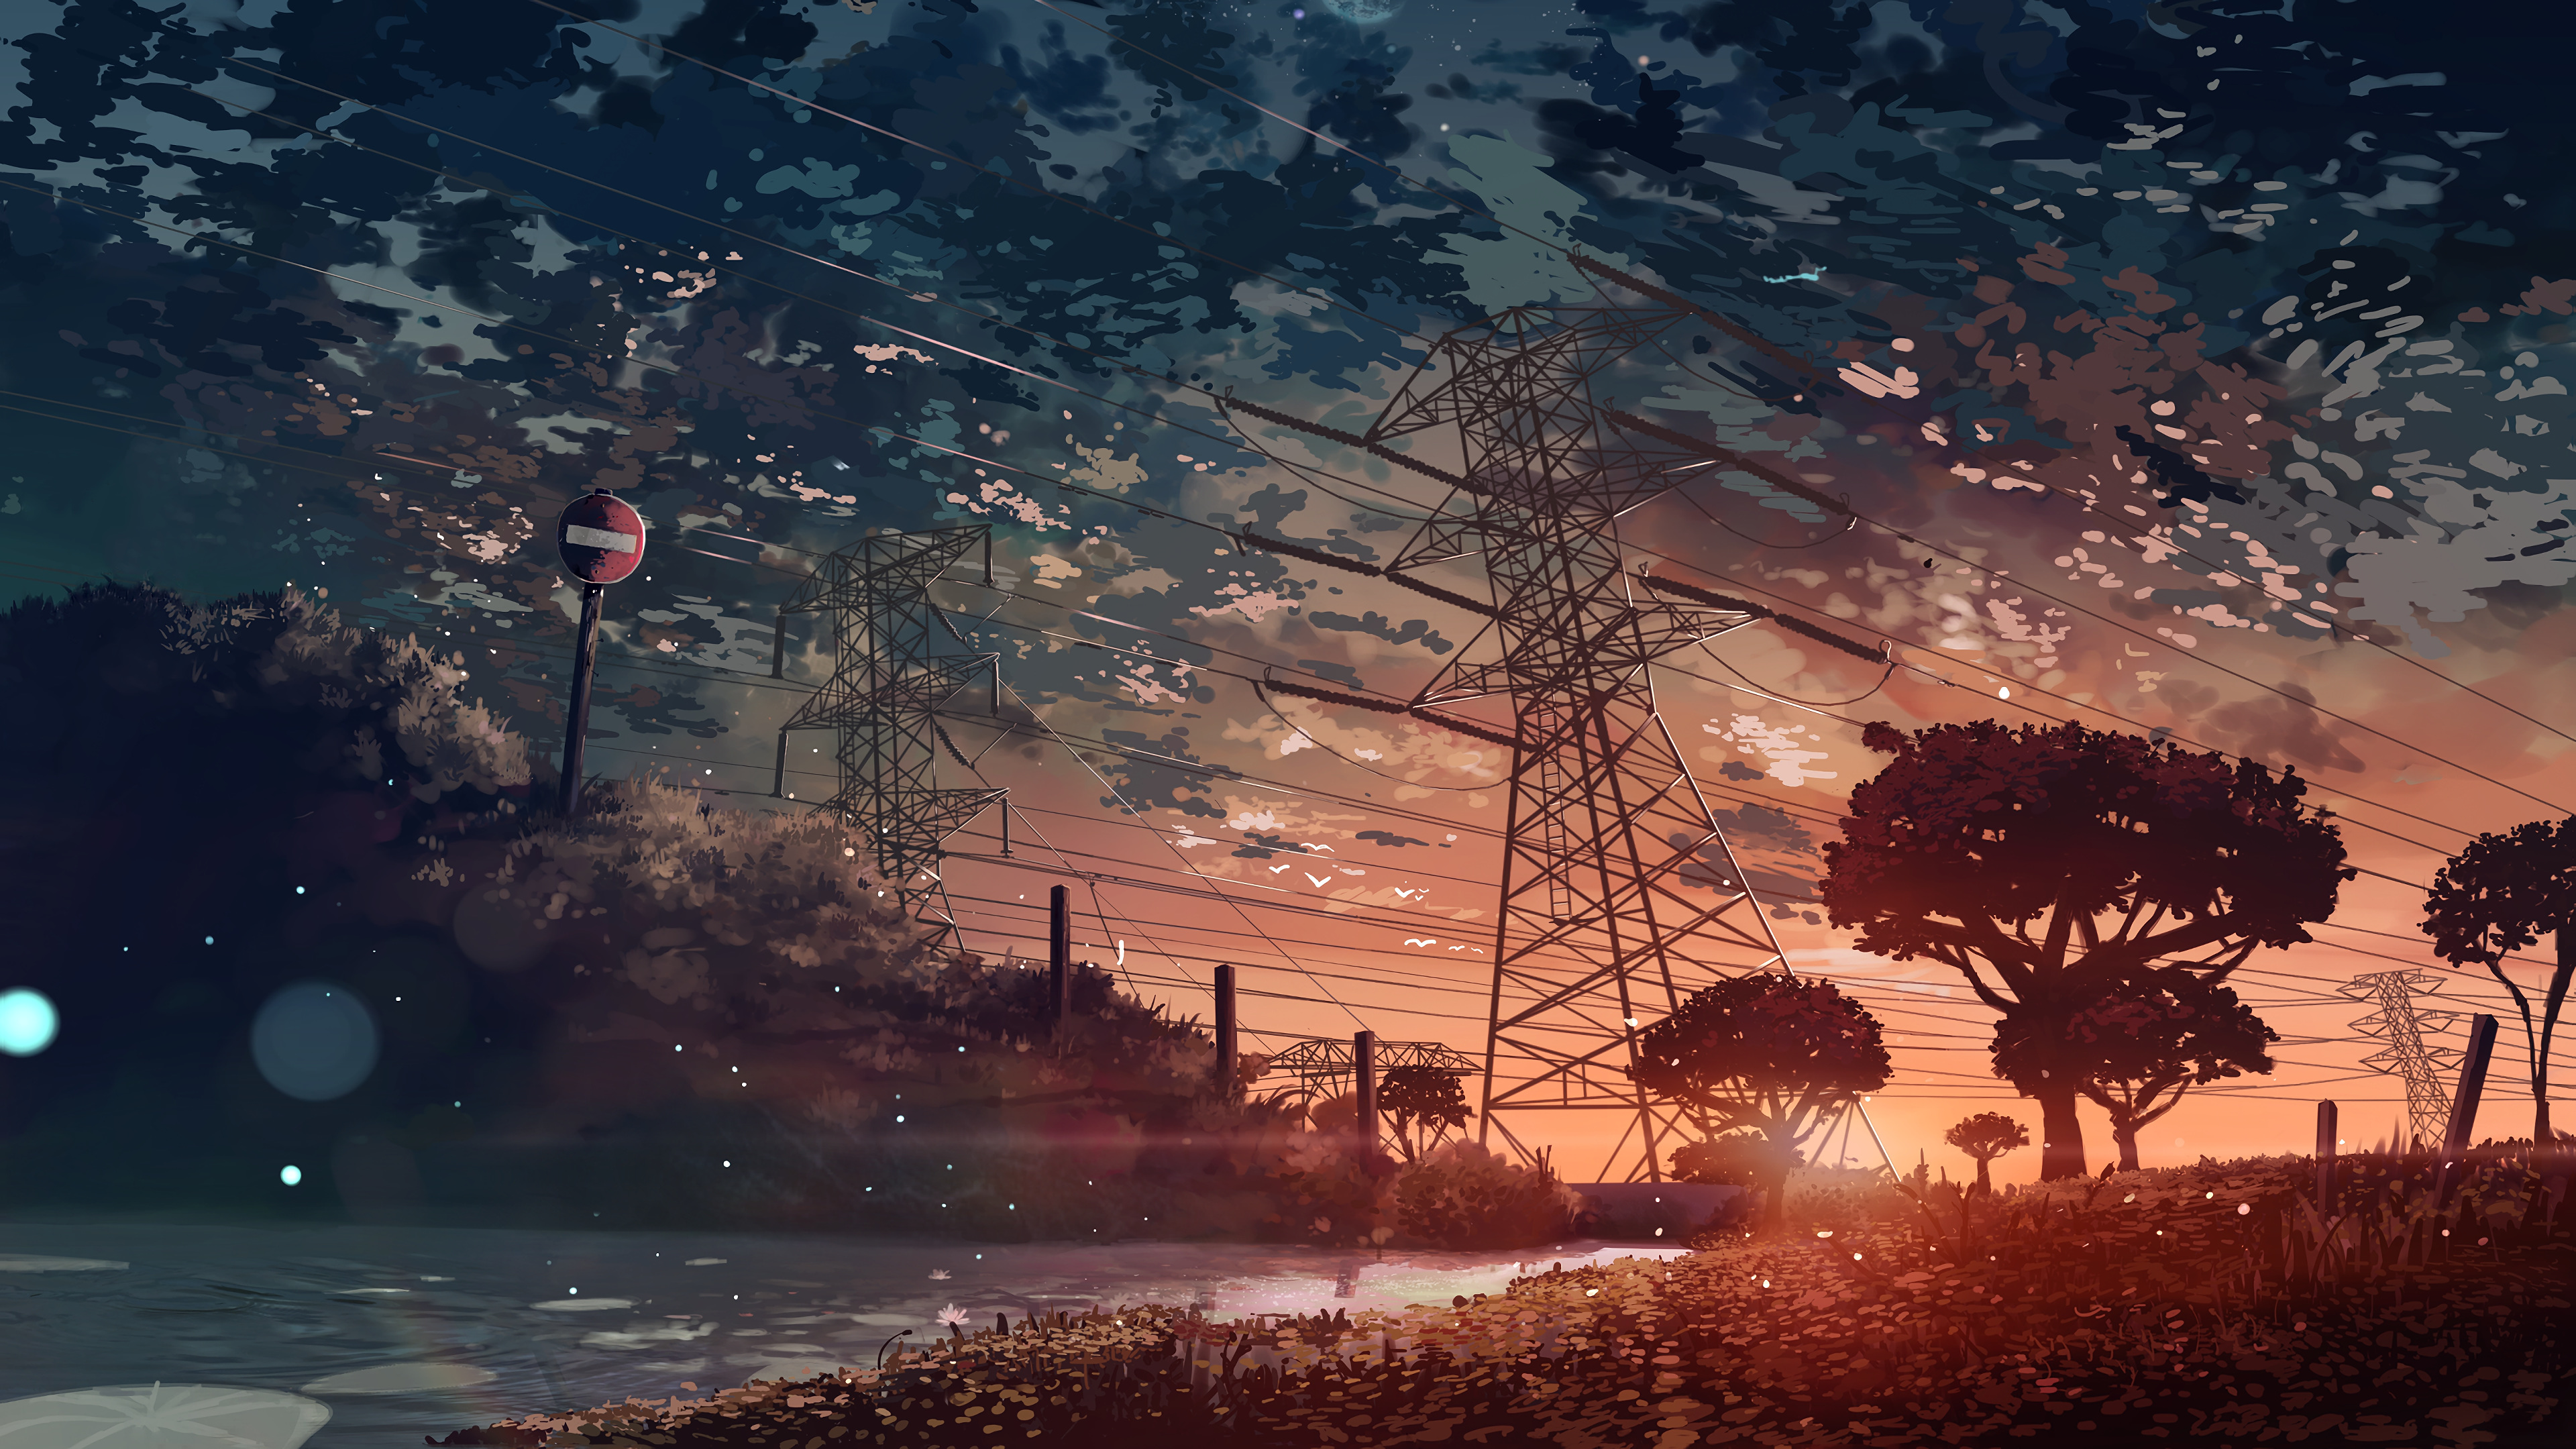 Anime Landscape Resolution Hd 4k Wallpapers Images   Anime 3840x2160